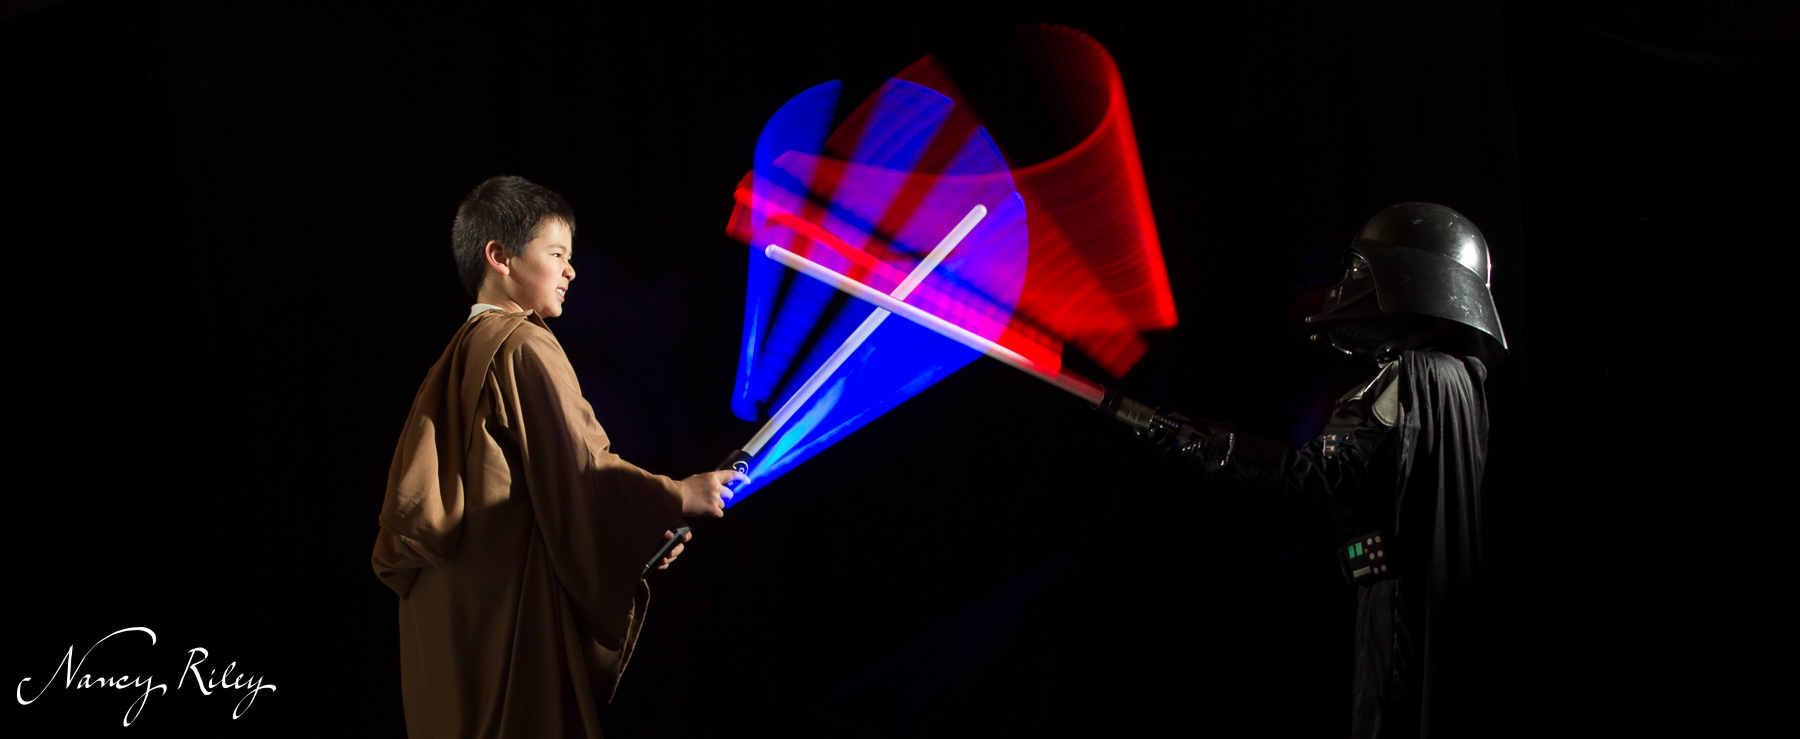 Lessons from lightsabers: timing the flash and focusing